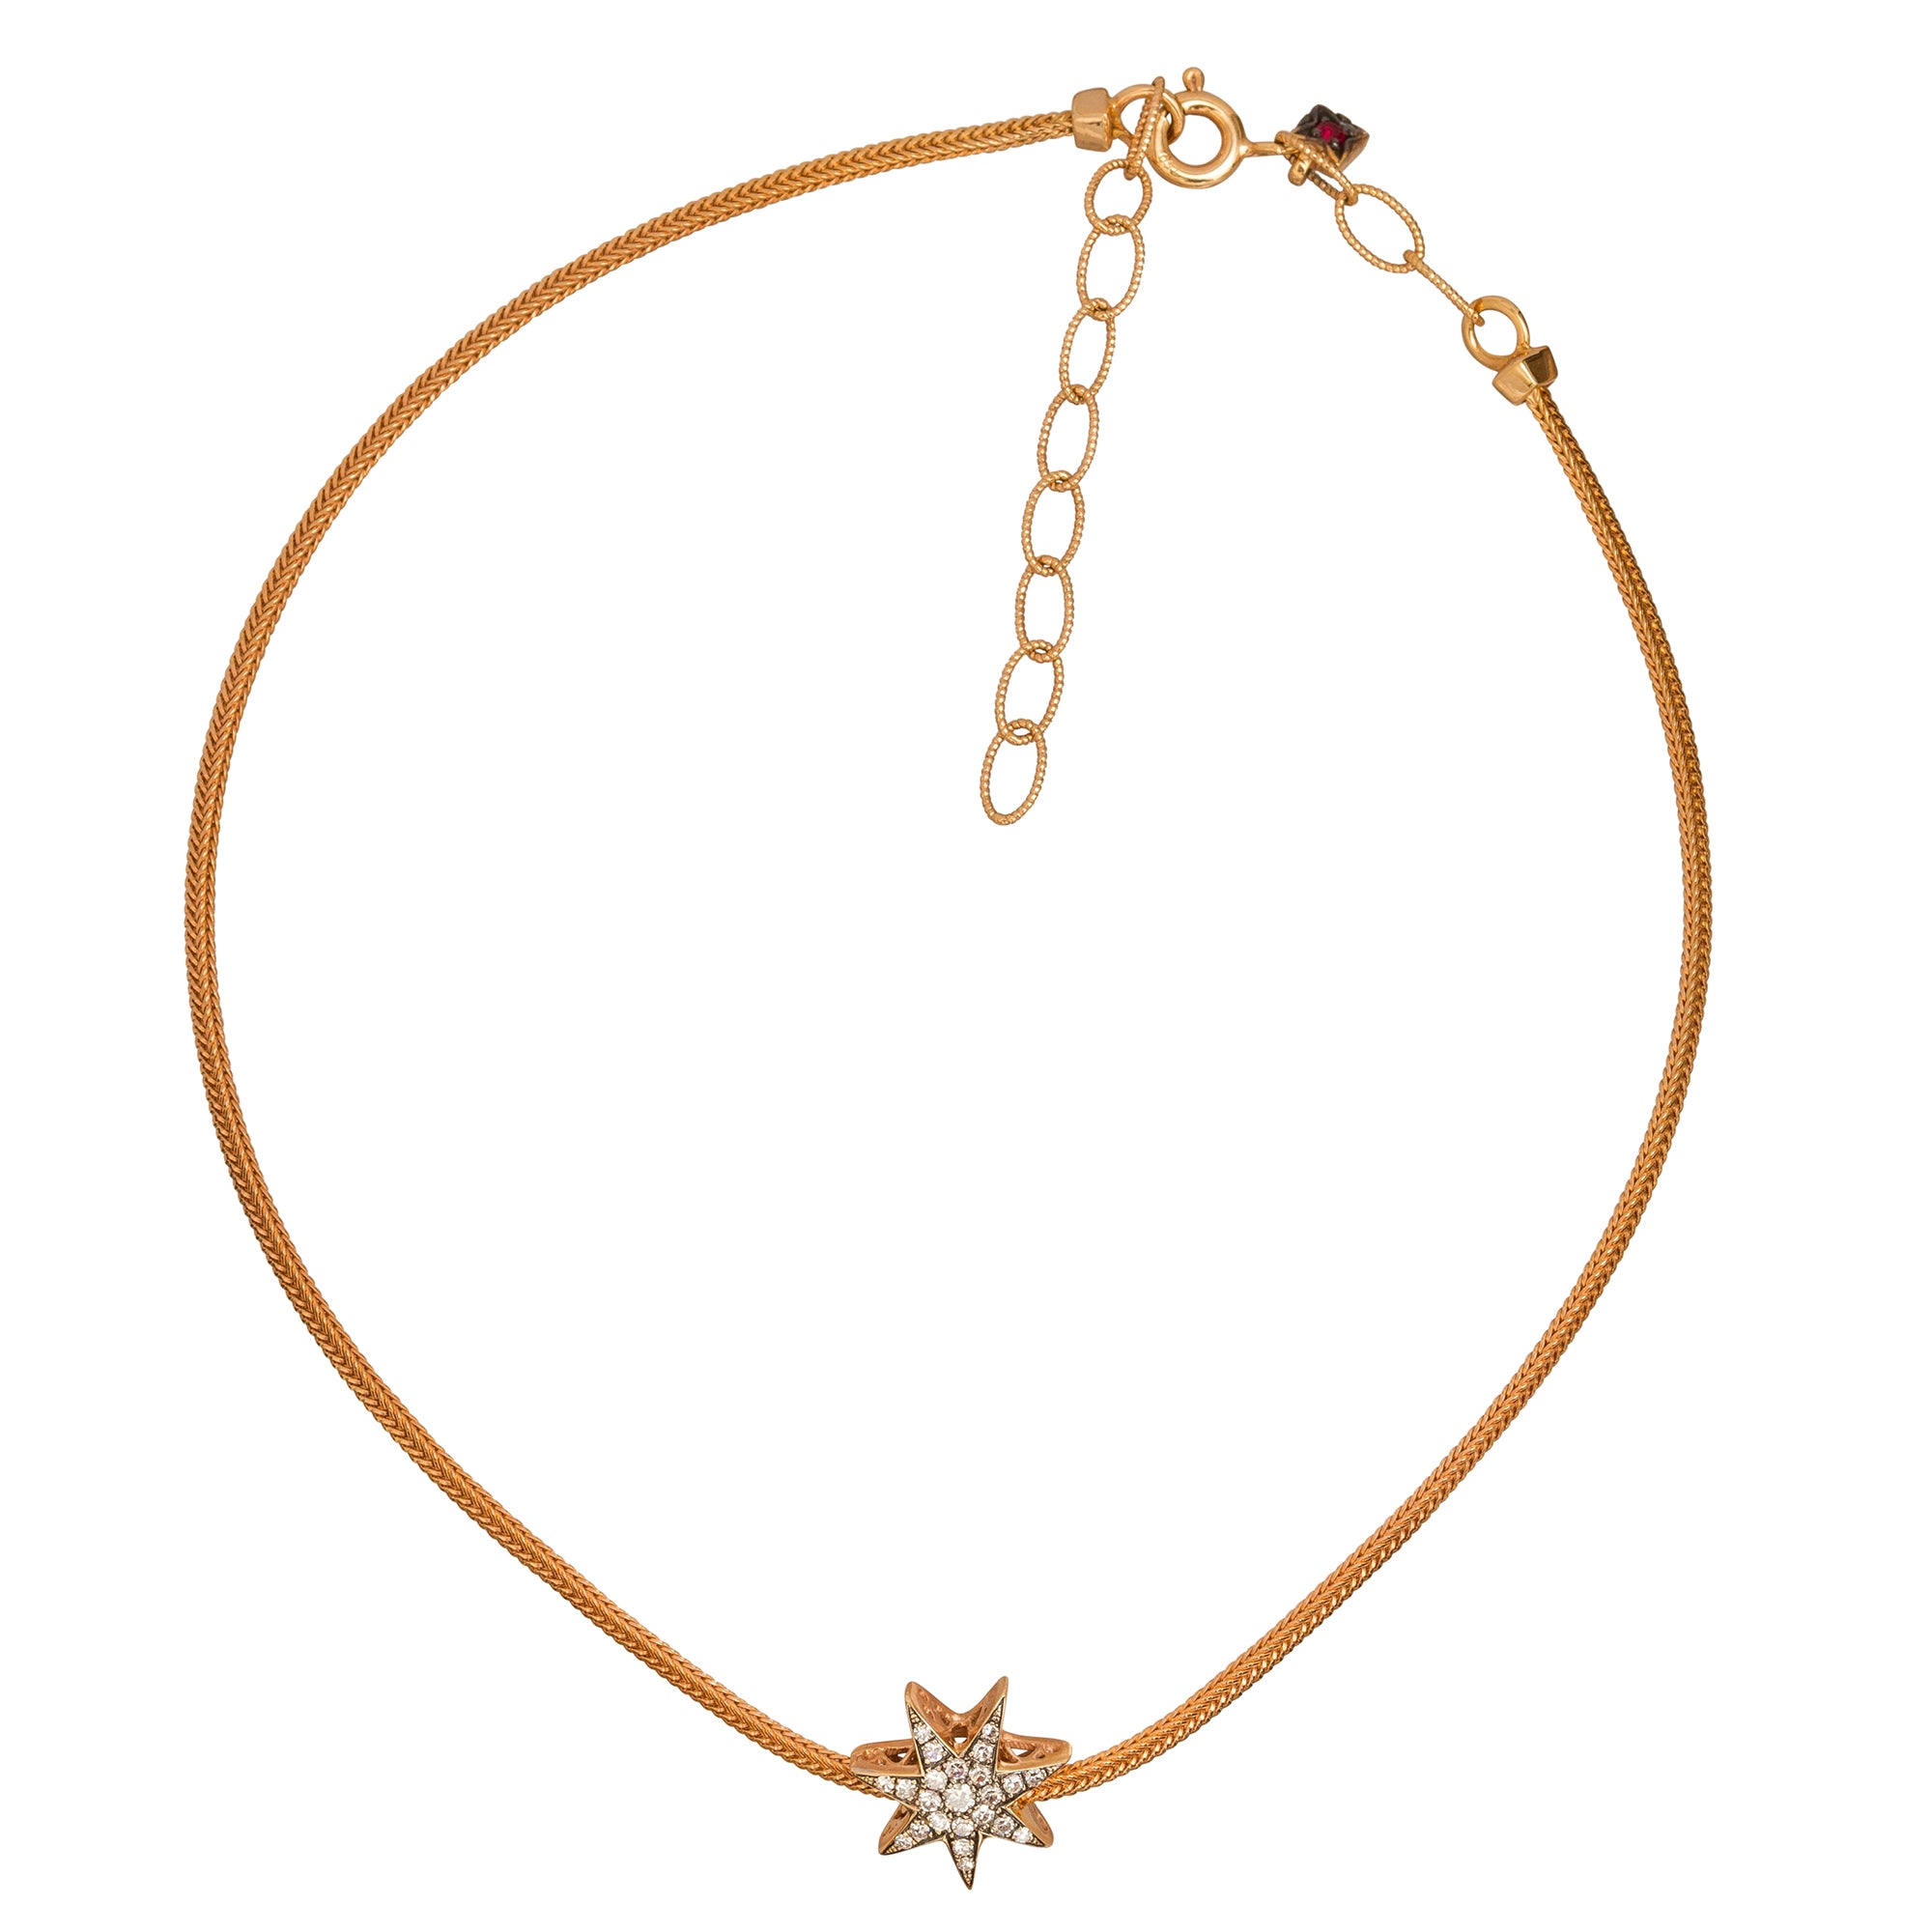 Istanbul Star Choker by Selim Mouzannar for Broken English Jewelry